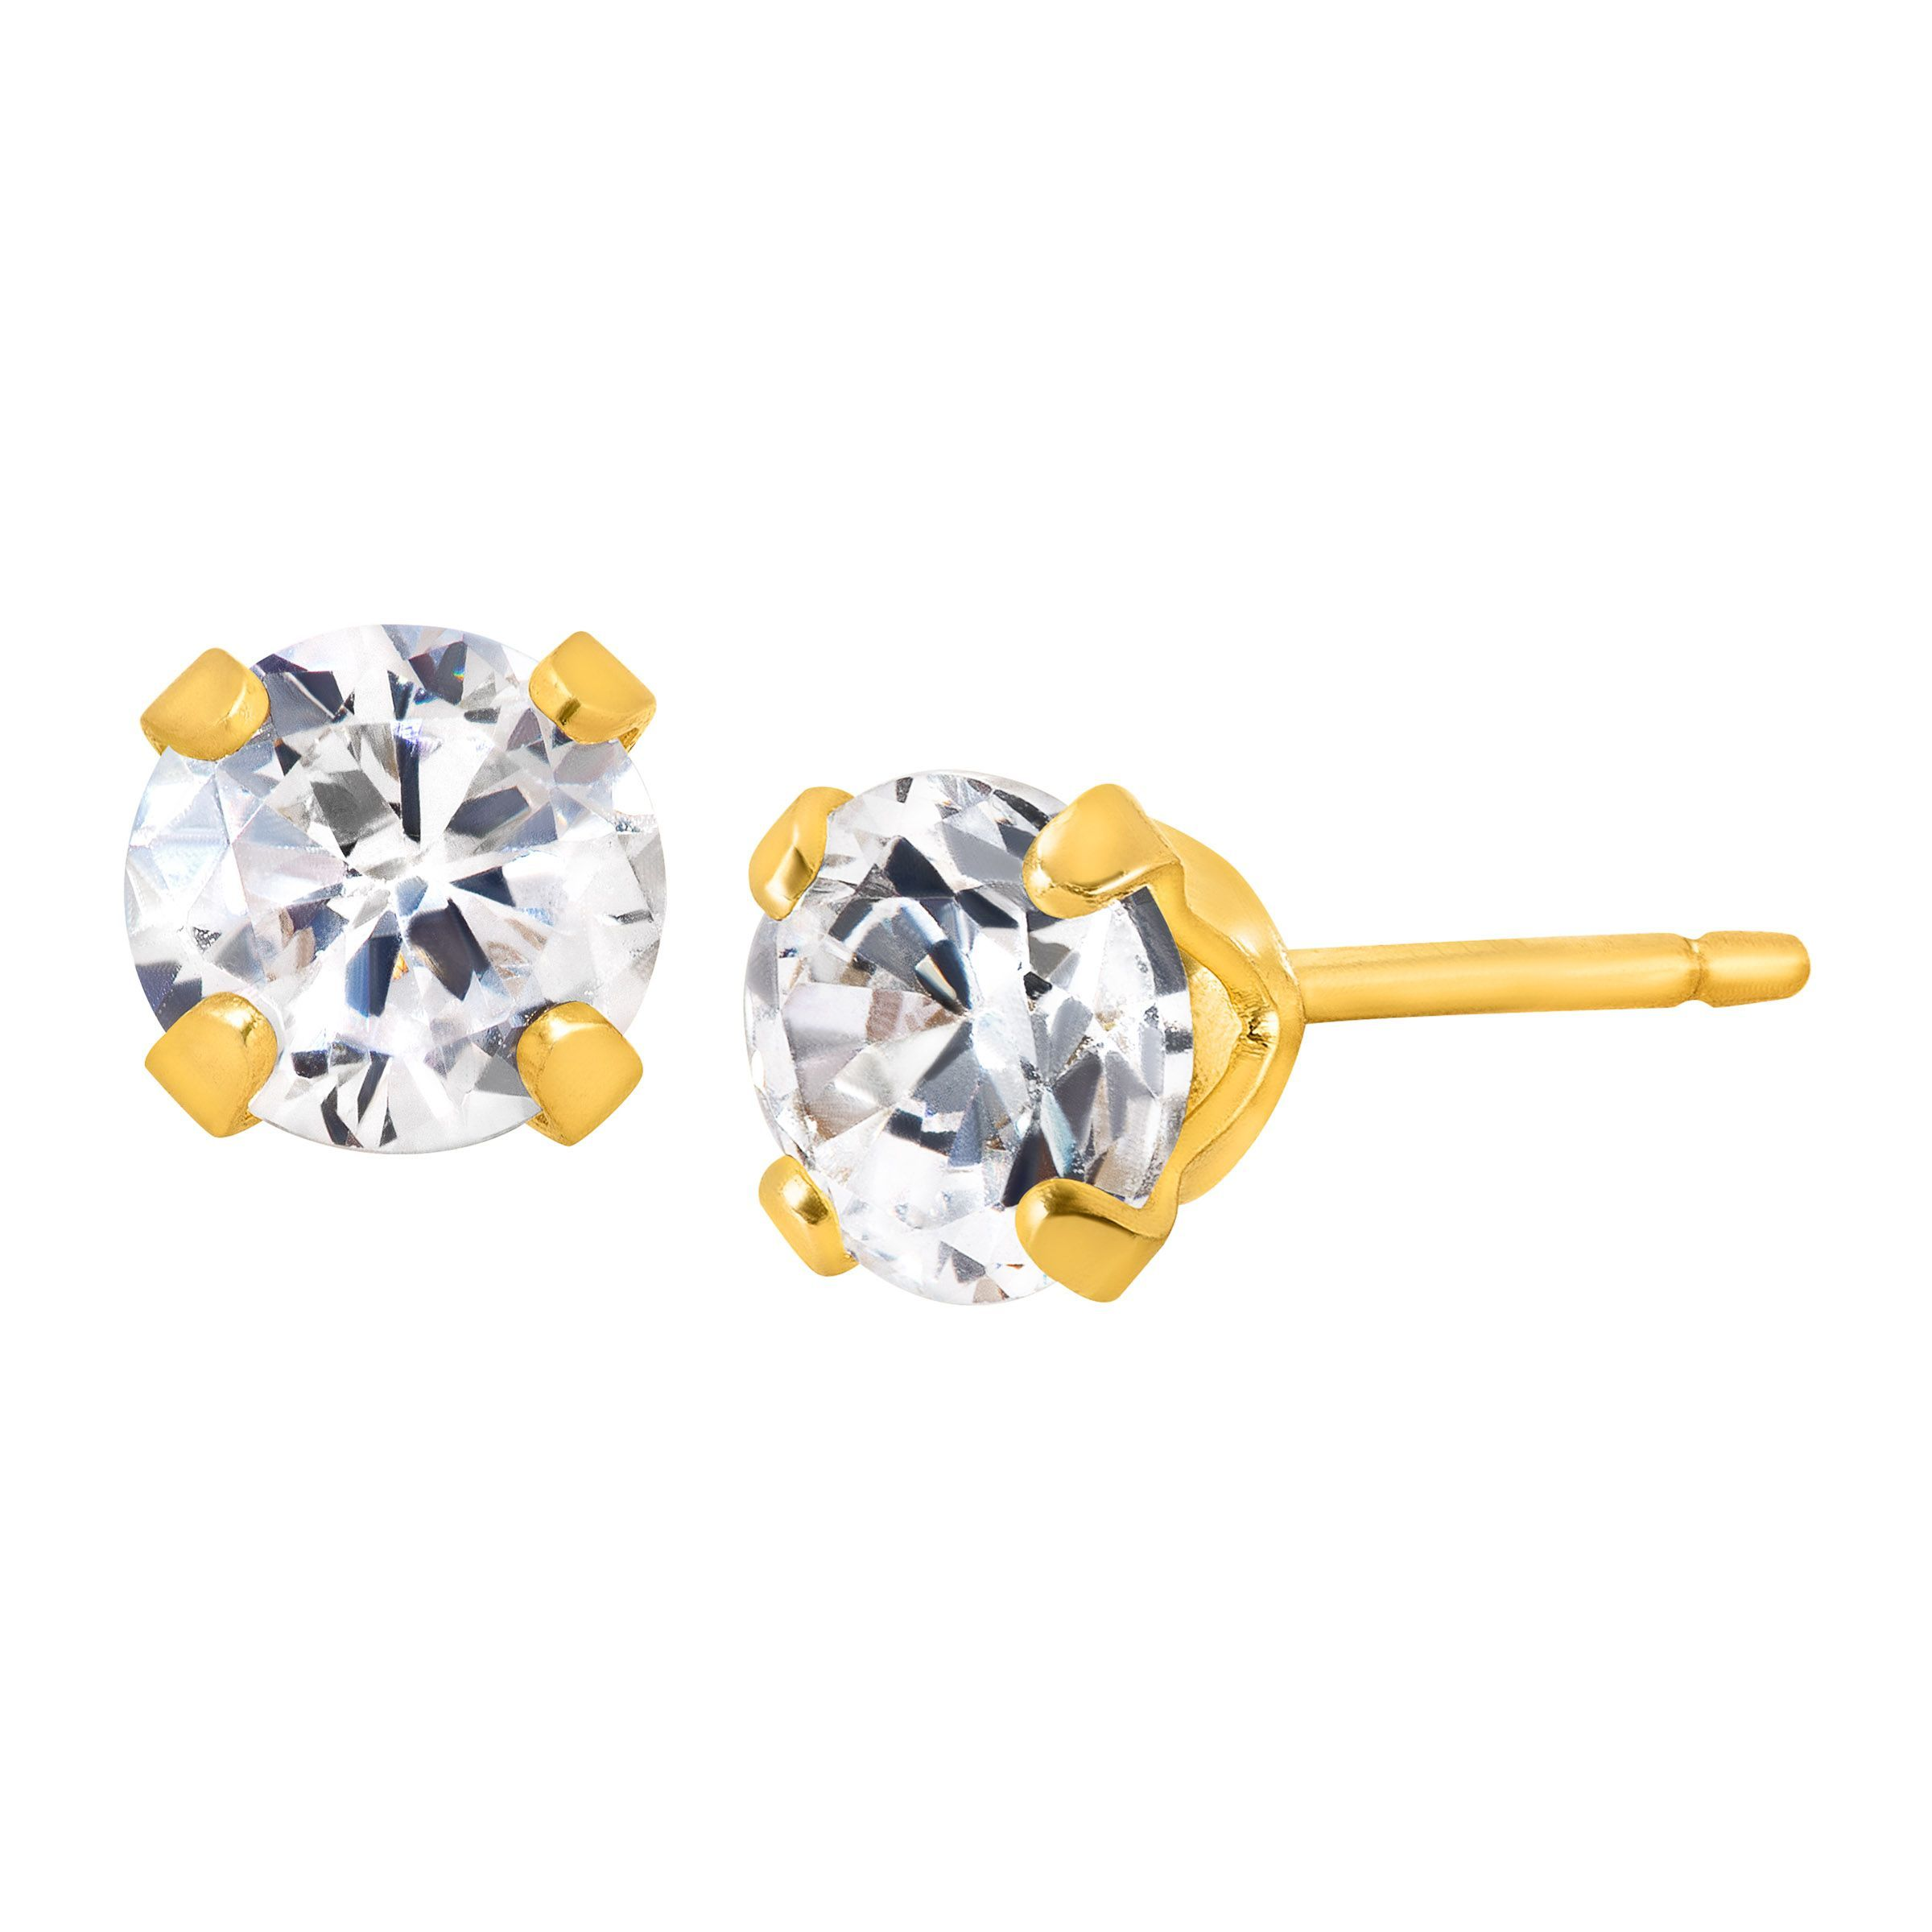 484ef5bff Details about 3/4 ct Stud Earrings with Cubic Zirconia in 14K Gold-Plated  Sterling Silver